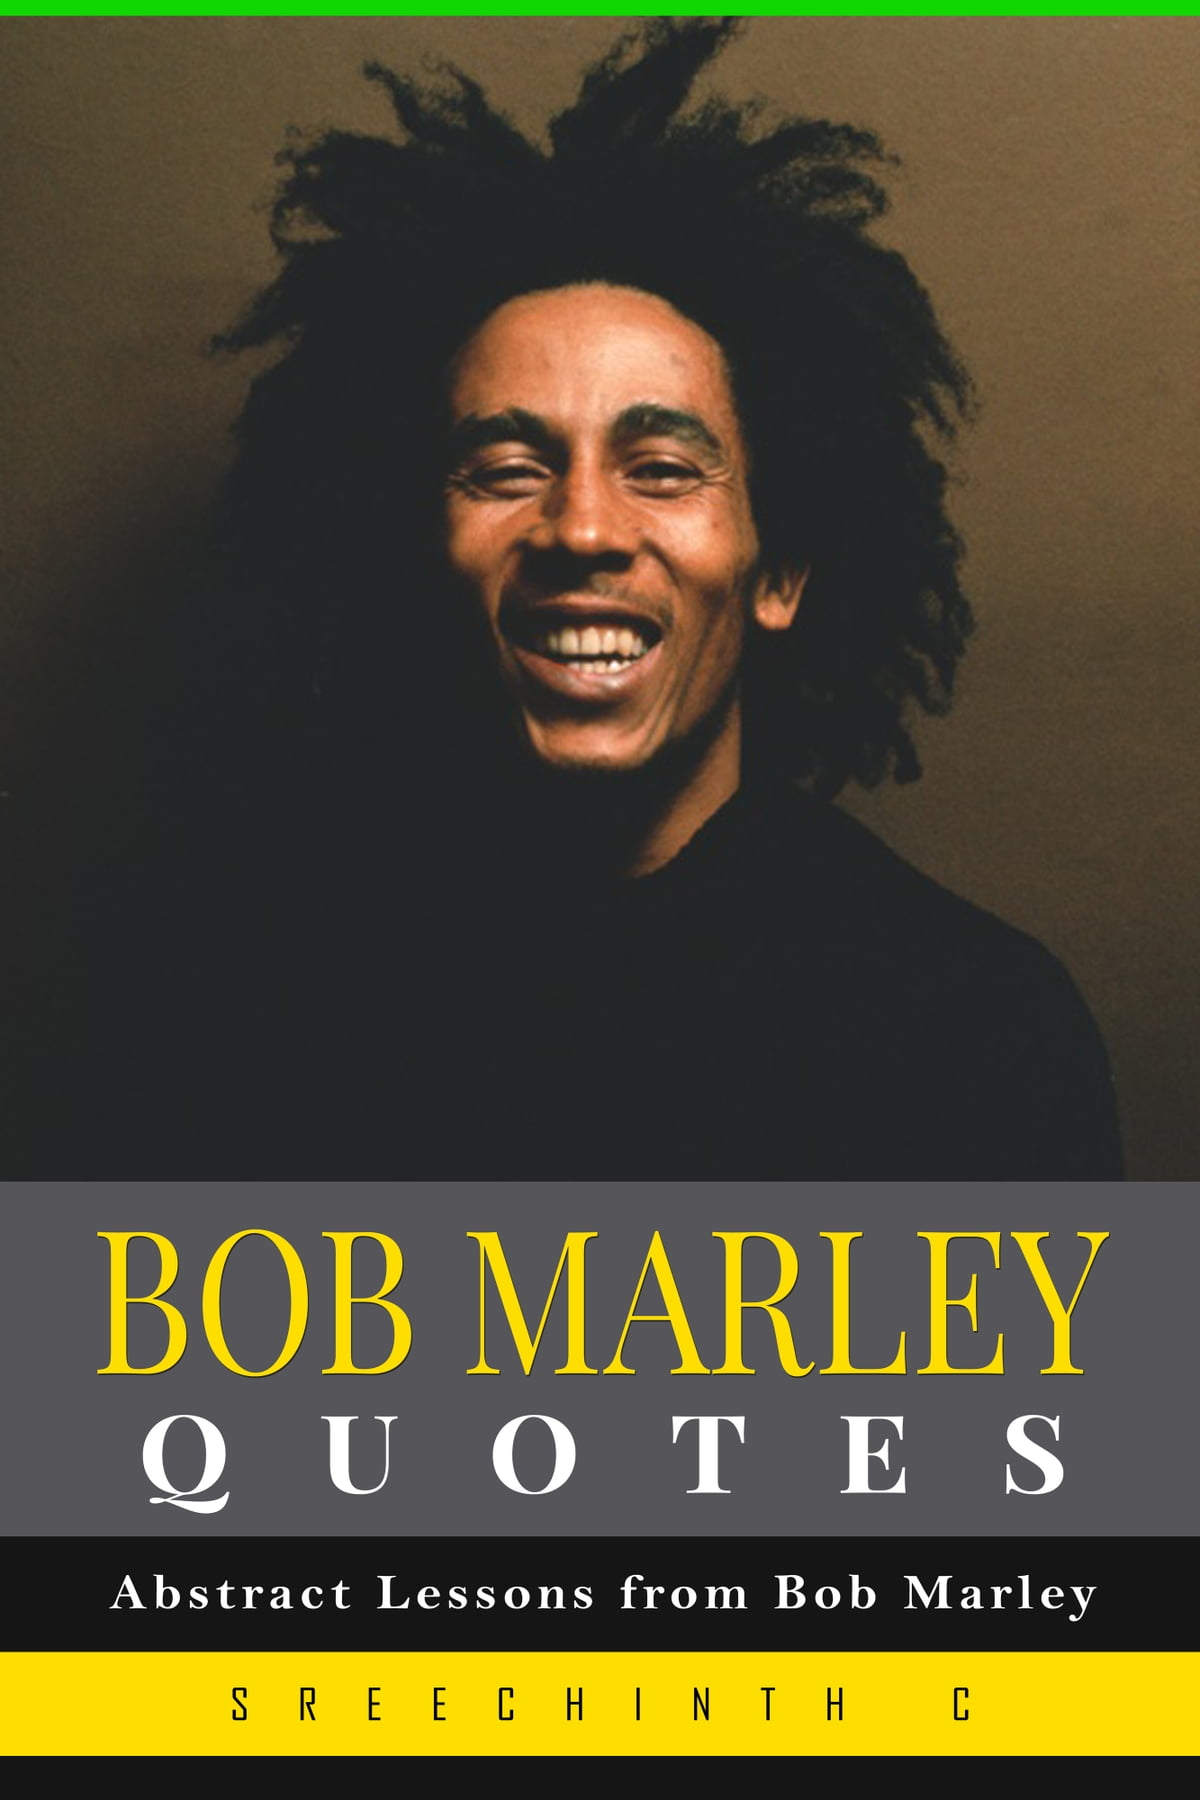 Bob Marley Quotes Abstract Lessons From Bob Marley Ebook By Sreechinth C Rakuten Kobo